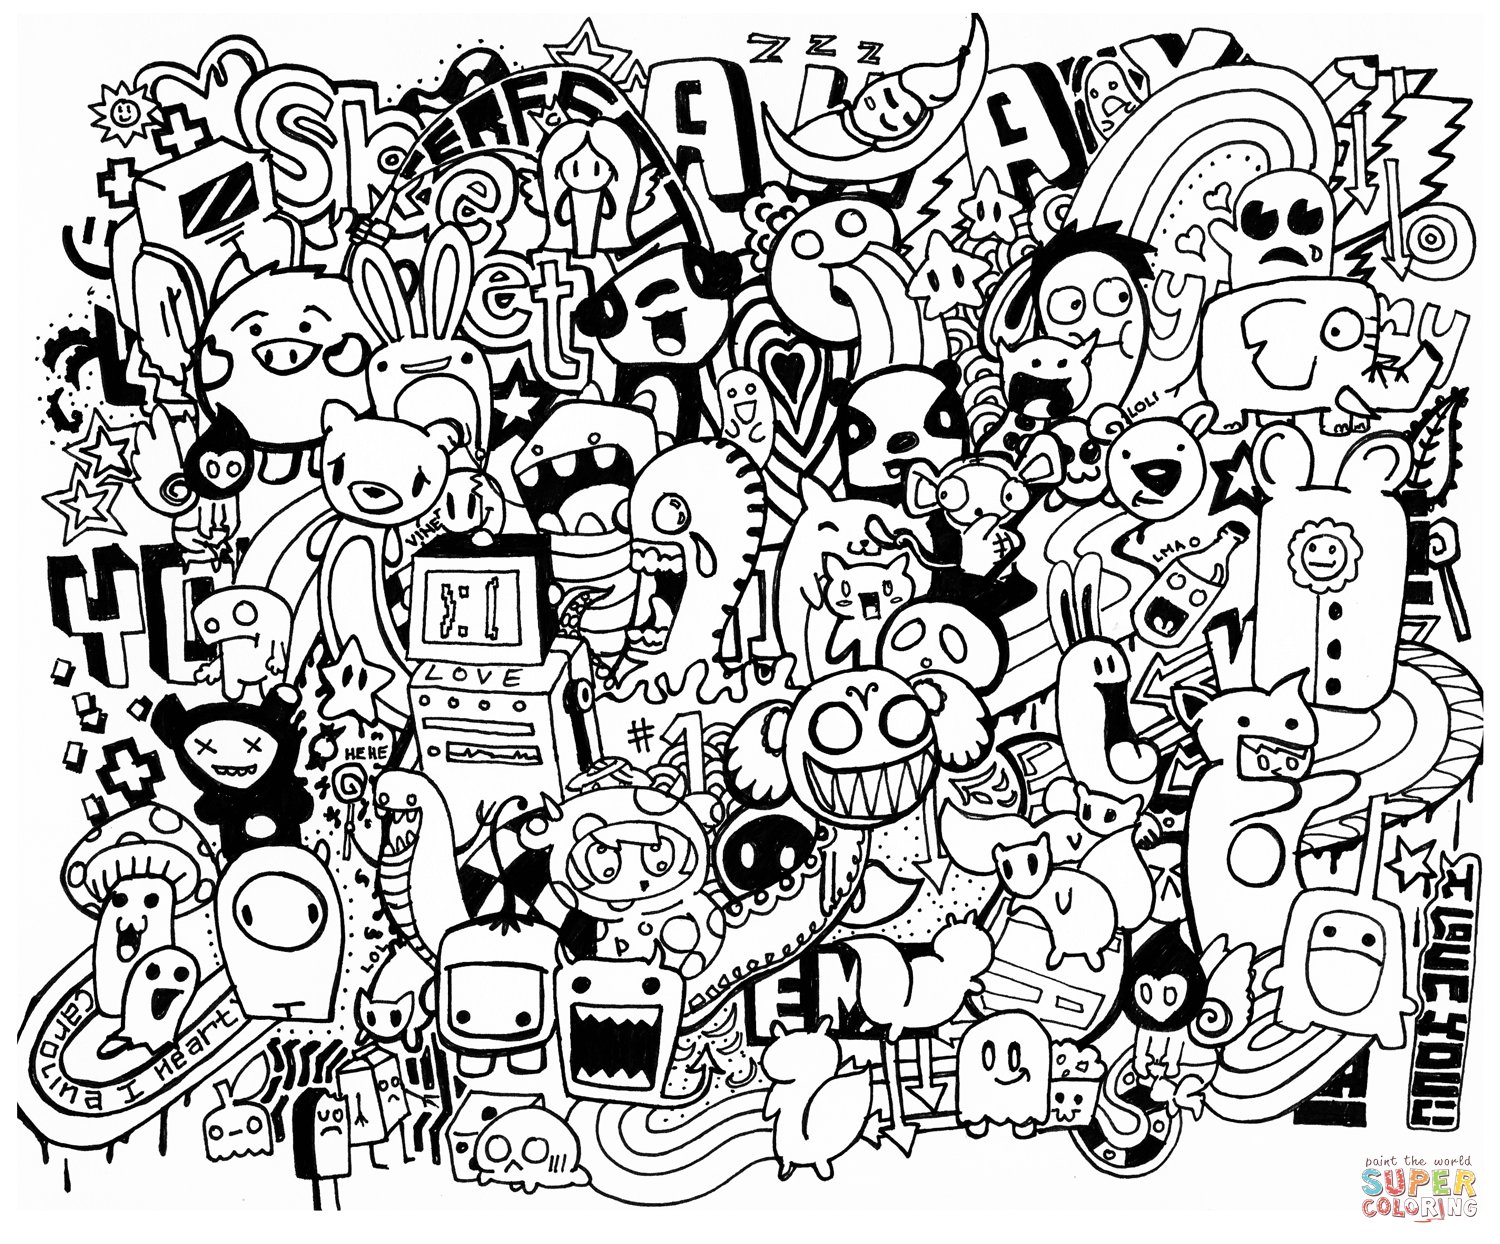 Doodle Mash Up Coloring Page | Free Printable Coloring Pages - Free Printable Doodle Art Coloring Pages